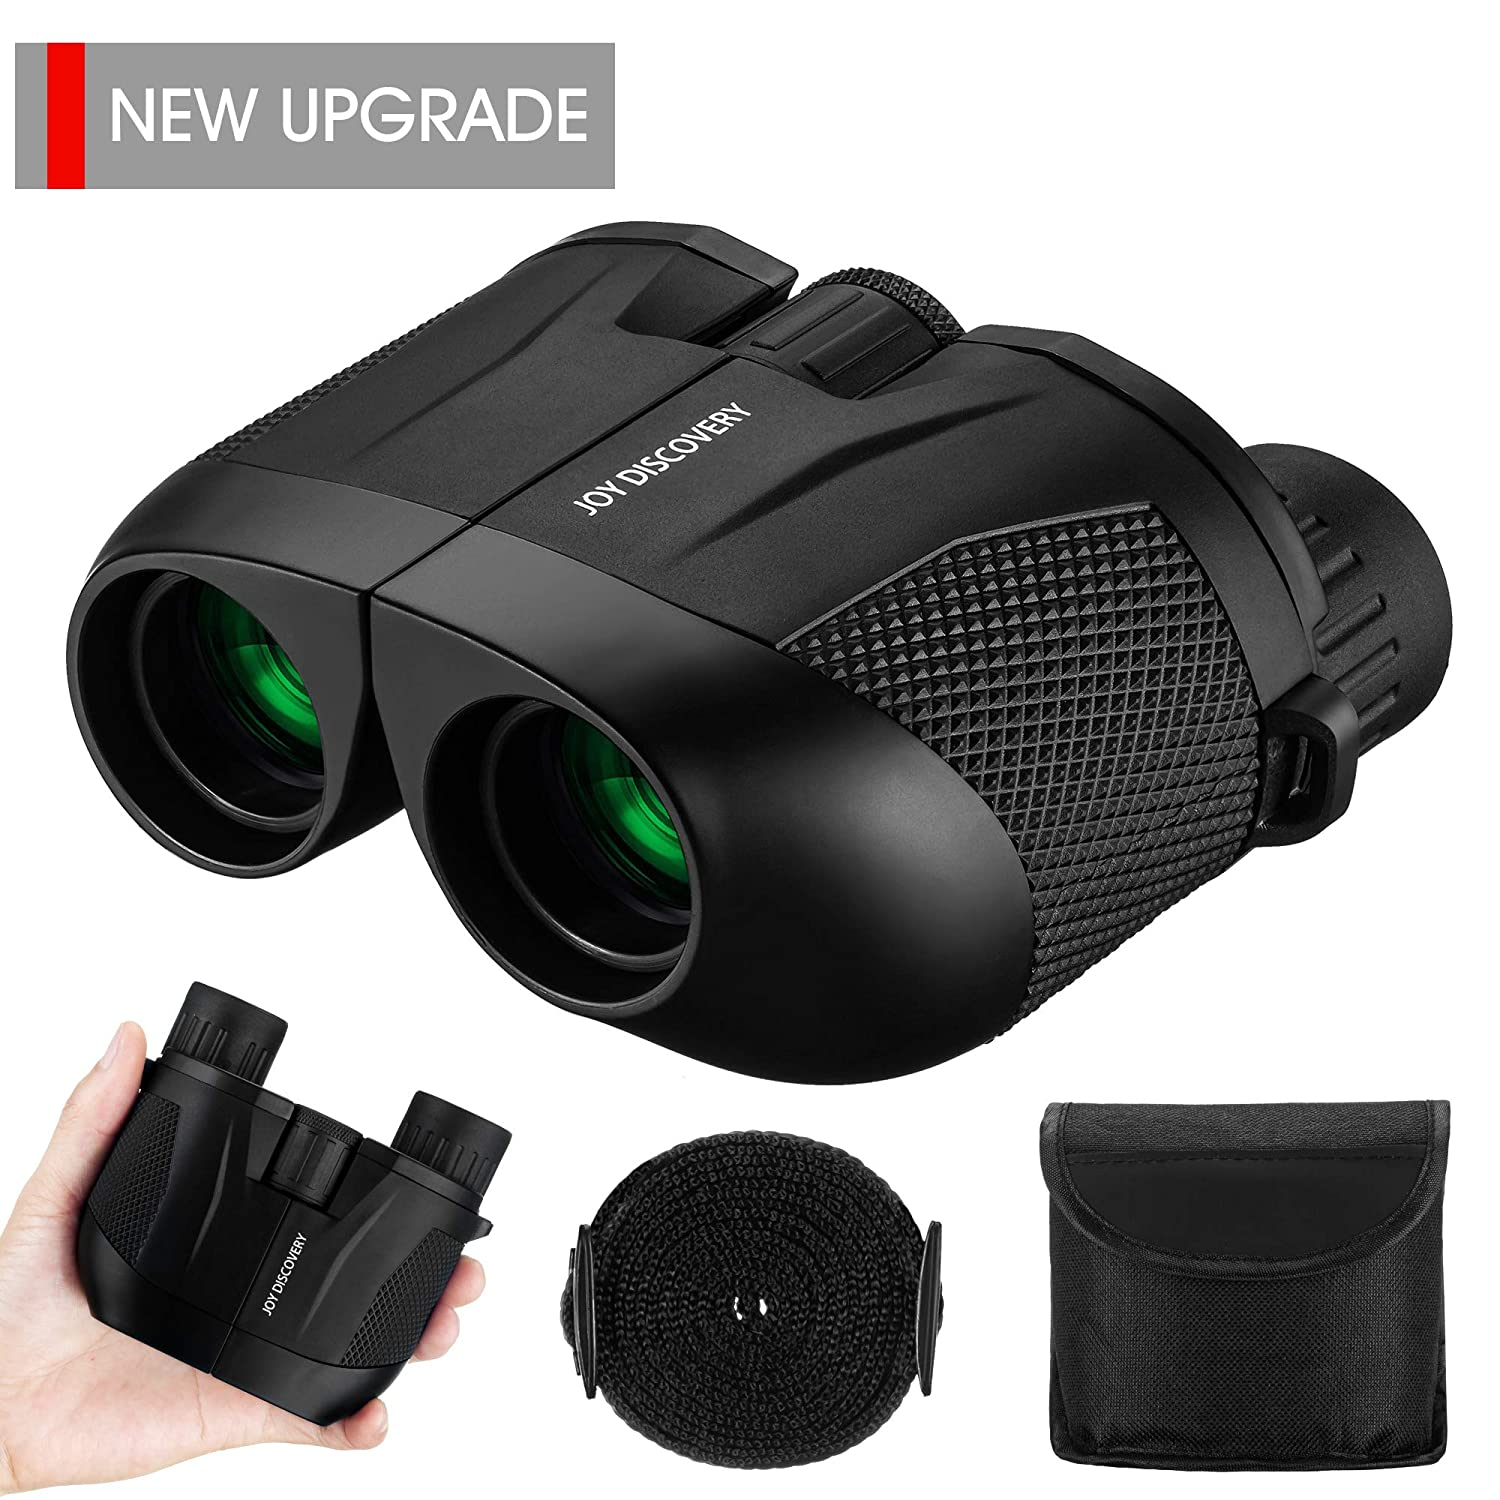 Compact Binoculars 10X25 HD Small Binoculars Palm-Sized Lightweight Easy Focus for Outdoor Hunting Travel Birding Hiking Compact Binoculars Fit for Adults and Kids by Joy Discovery